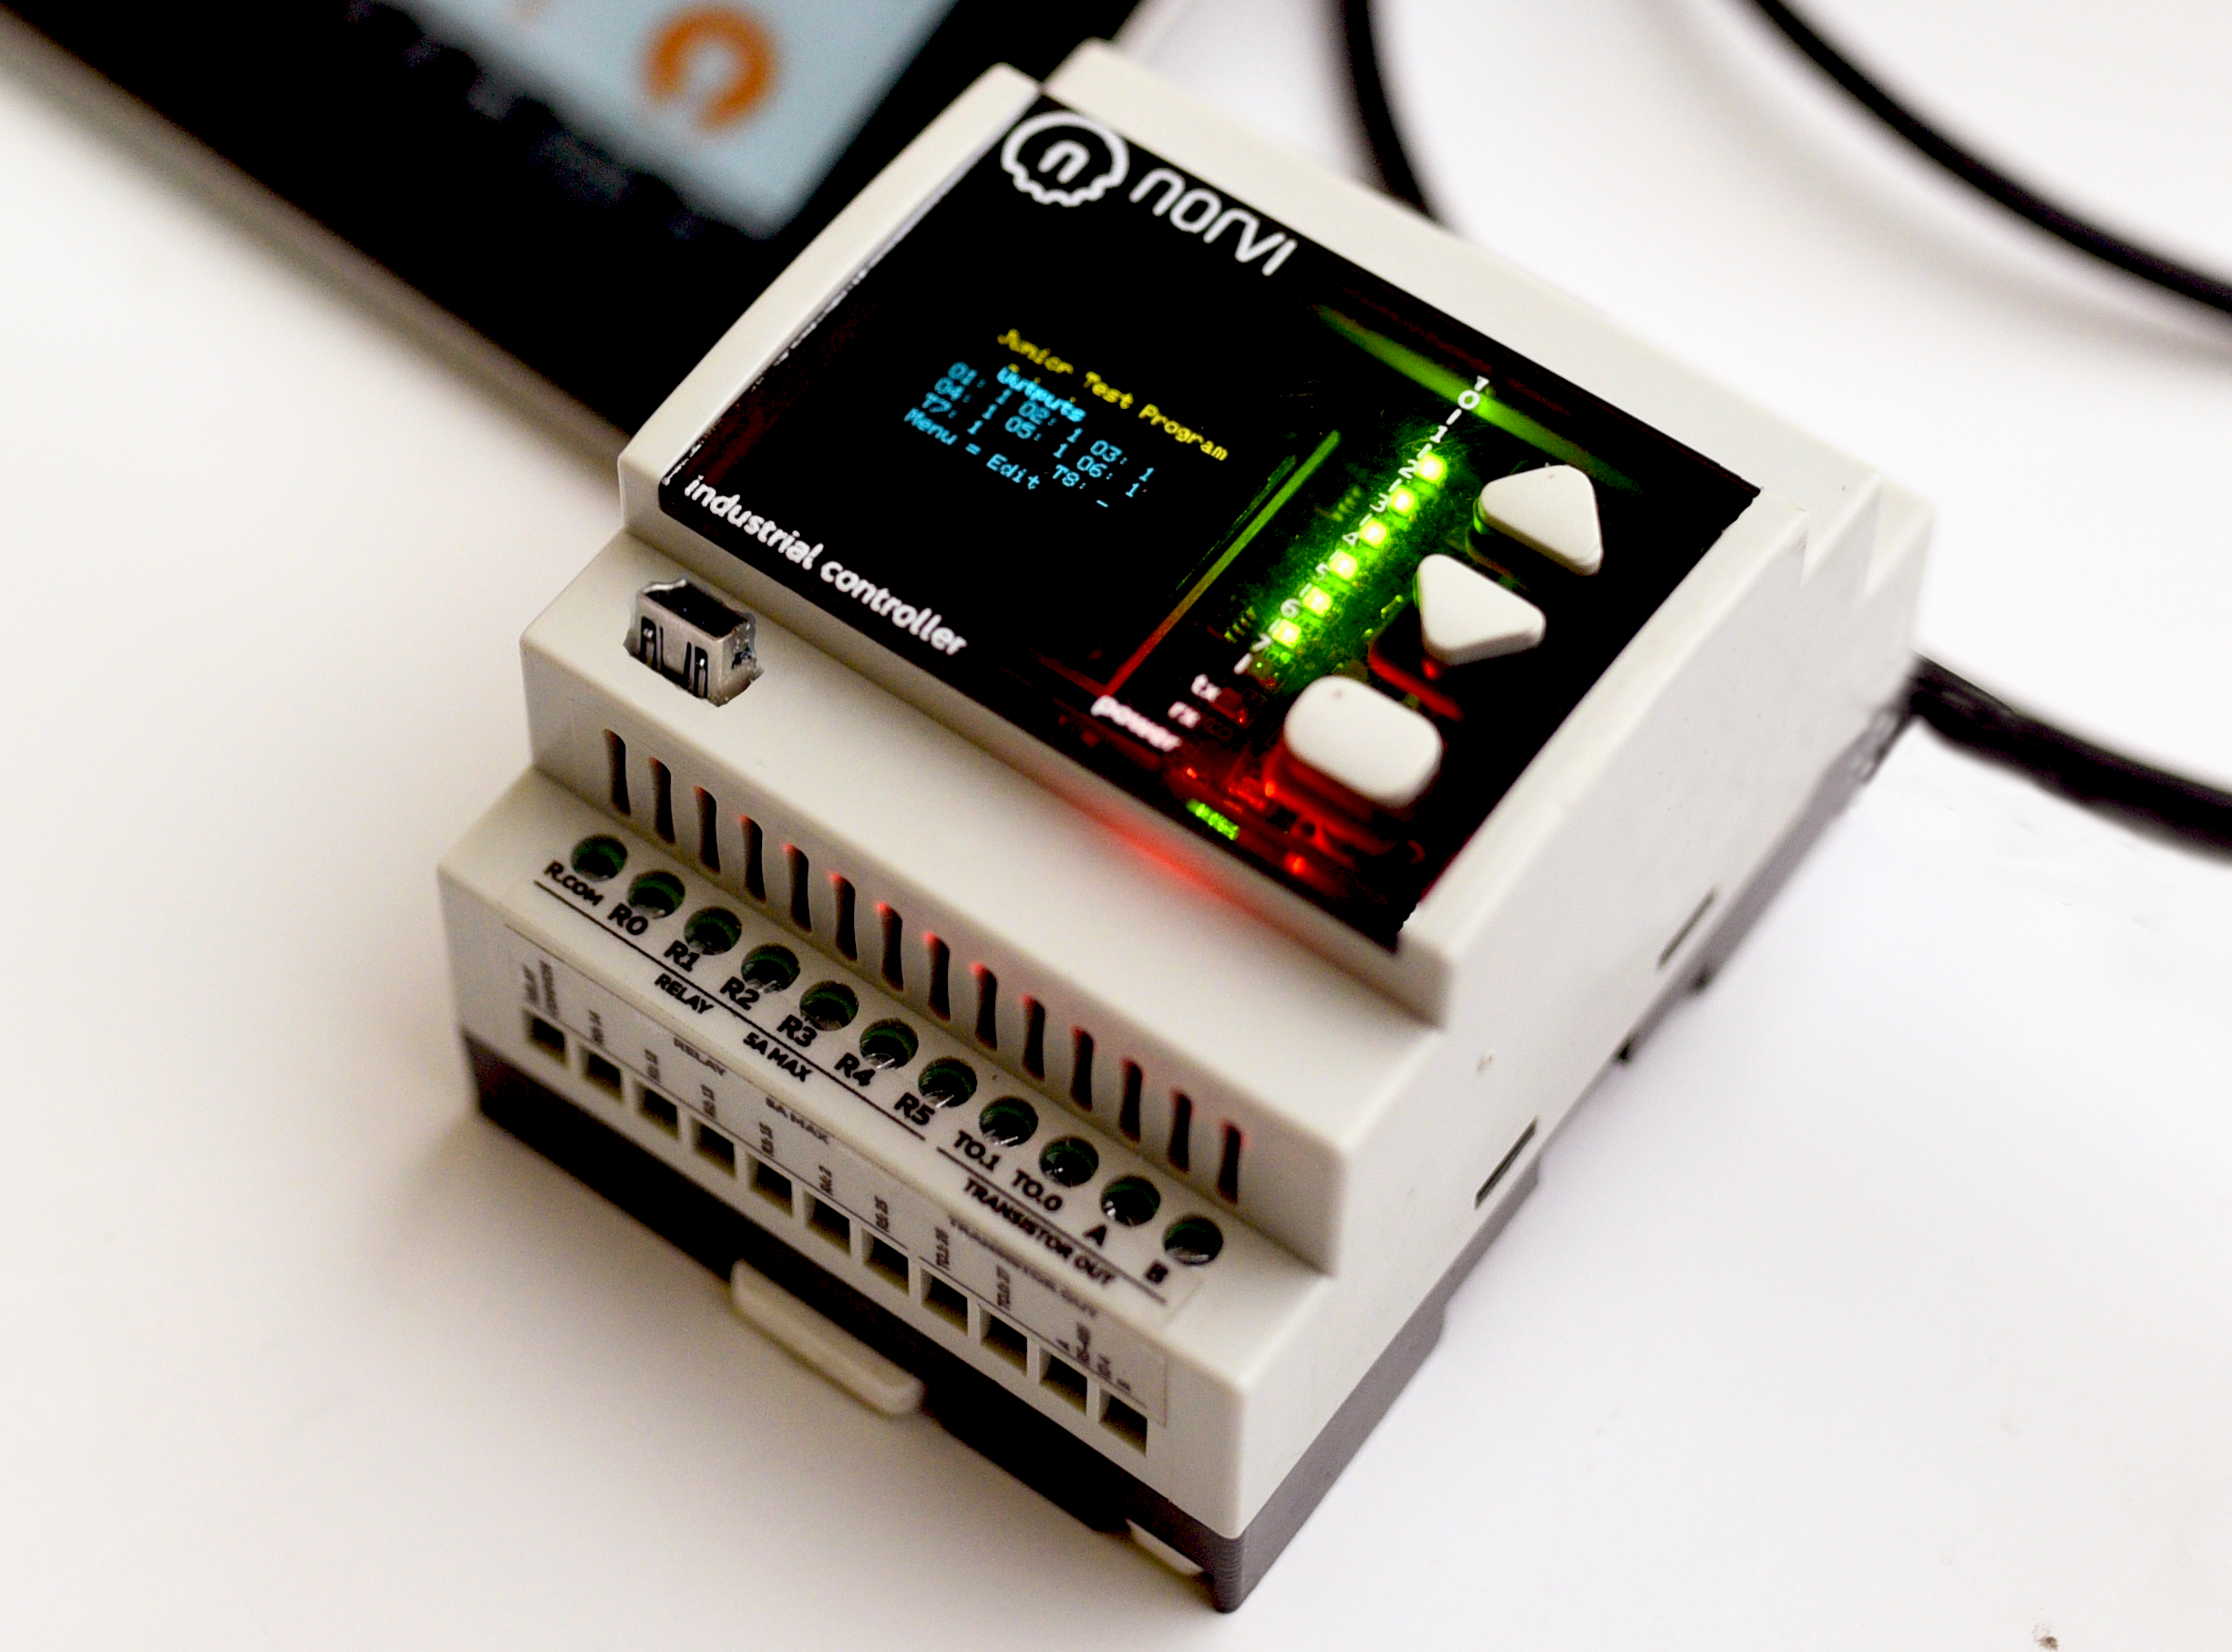 Norvi At Industrial Iot Norvi Controllers Comes With Many